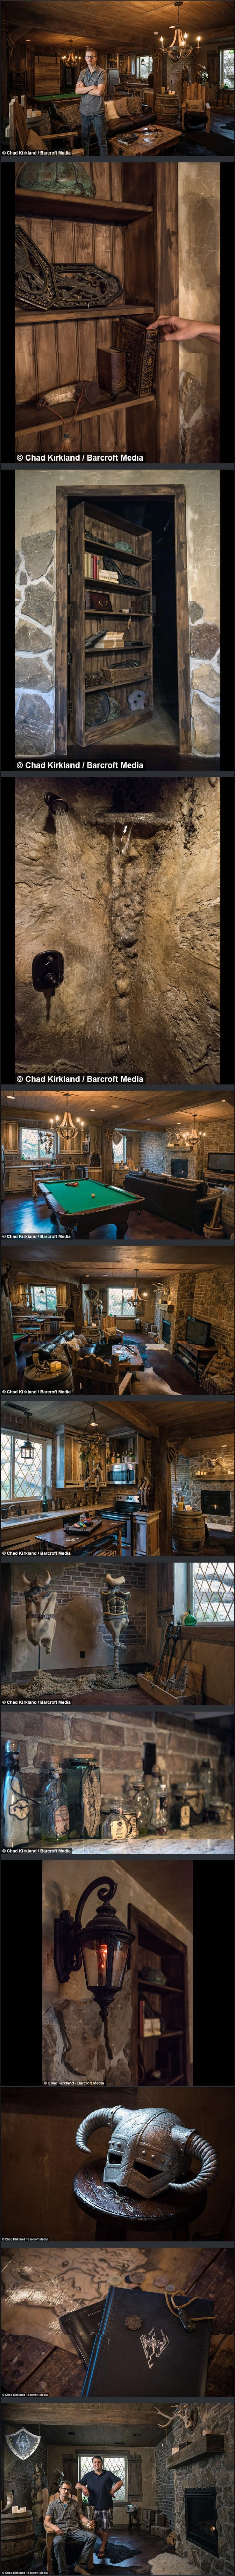 Elder Scrolls Basement remodel took 3 years and $50,000